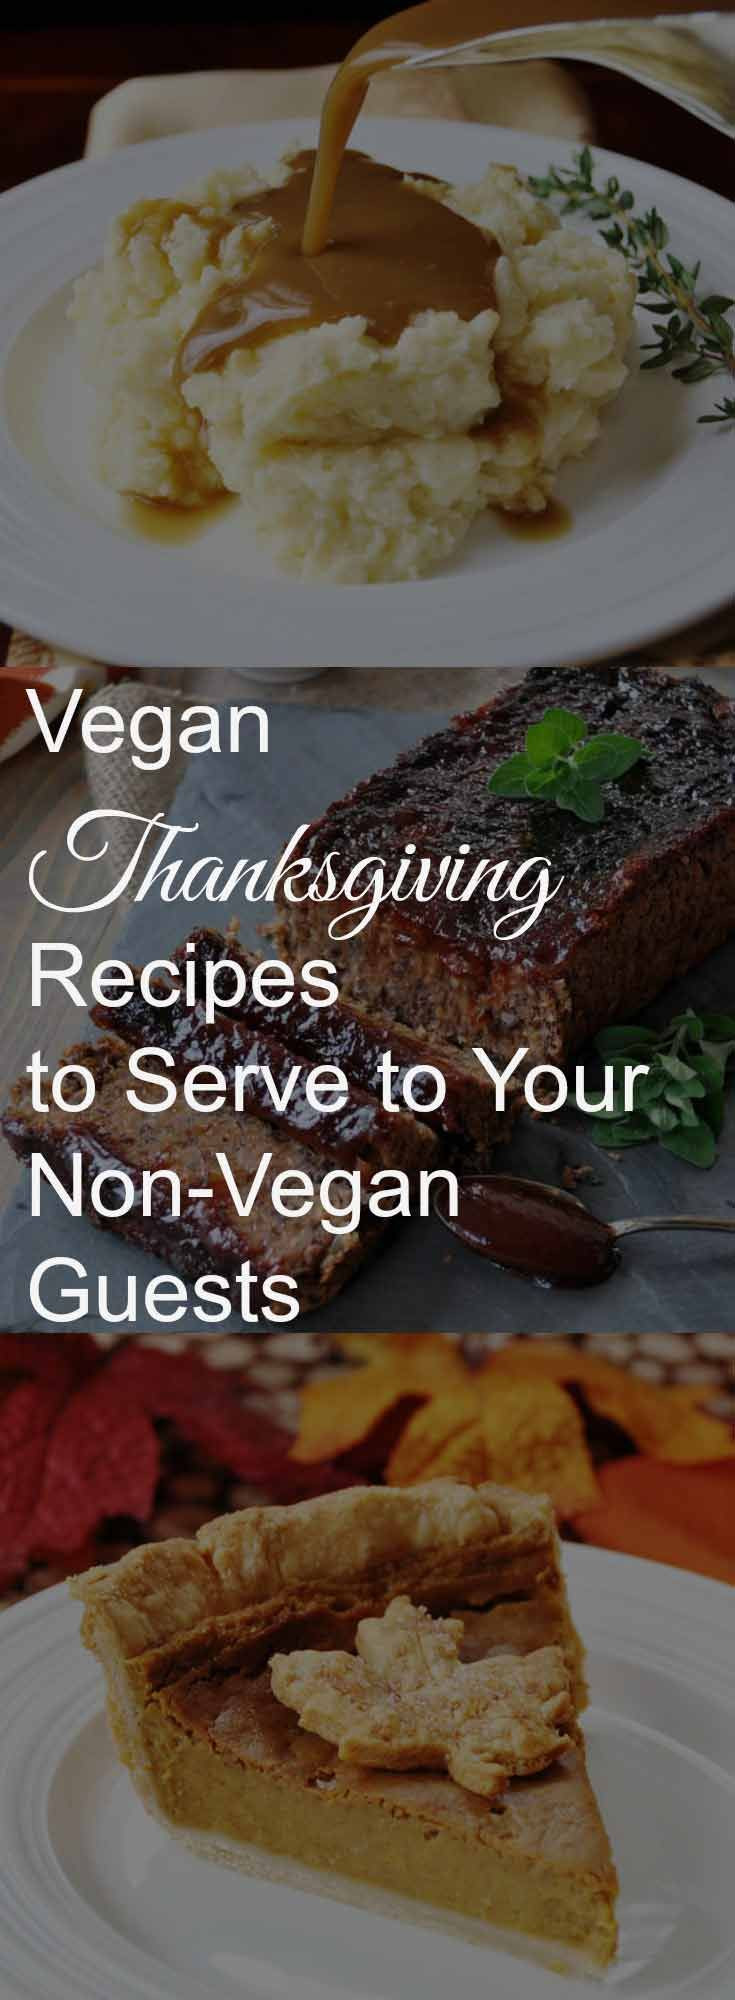 Vegan Recipes For Thanksgiving Dinner  Best 25 Vegan christmas dinner ideas on Pinterest